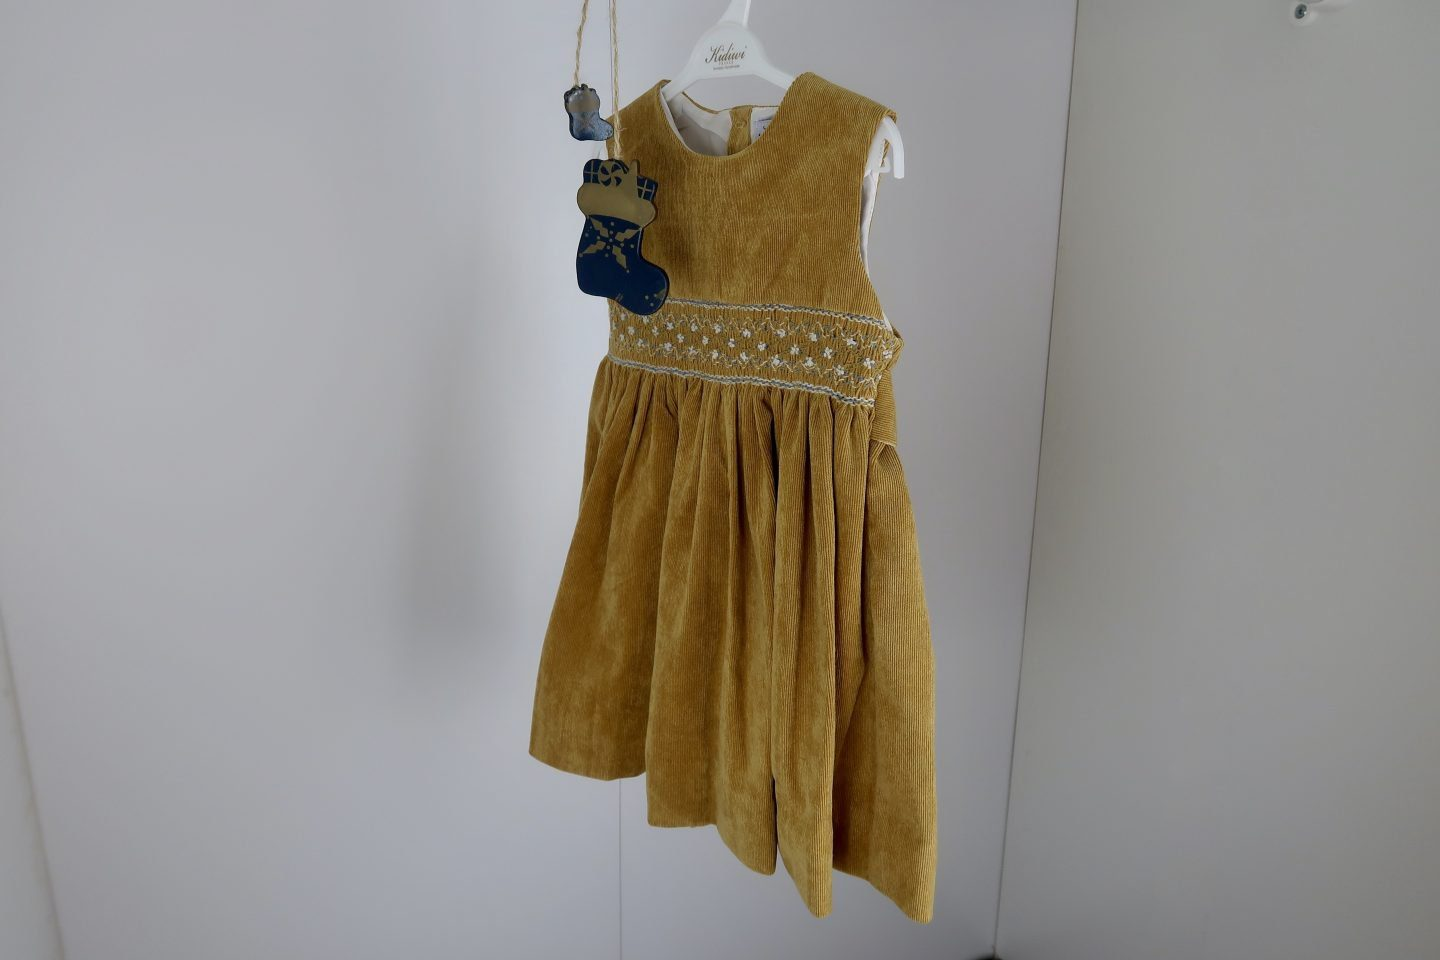 A mustard coloured velvet dress for a young girl hanging up with a white background